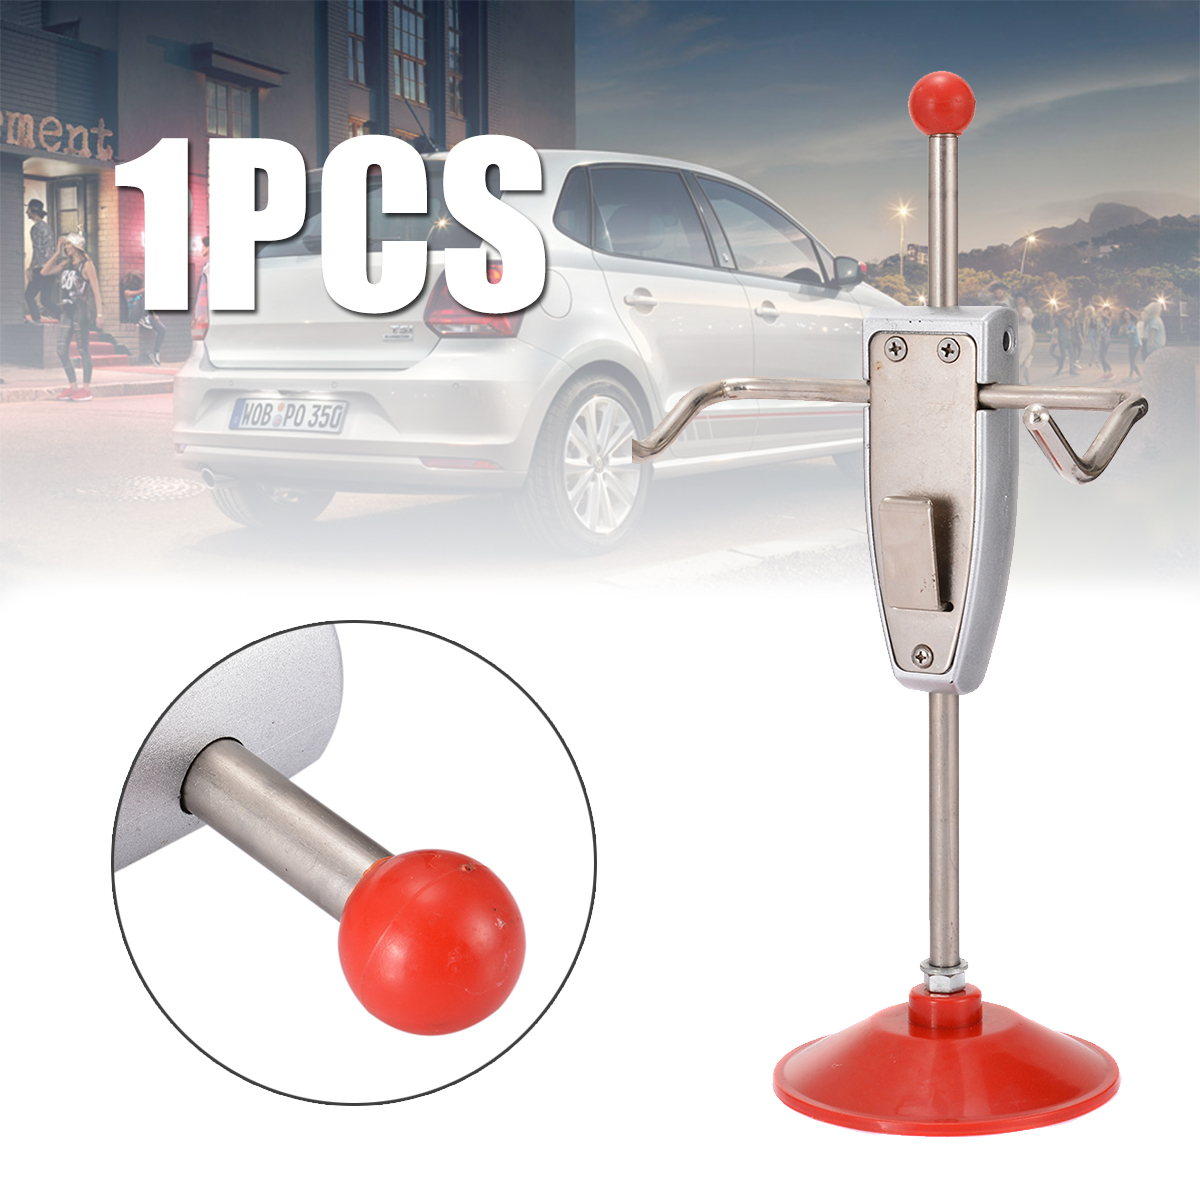 1pc 14.5/368mm Car Steering Wheel Locator Holder Stand Wheel Alignment Rack Tool Vehicle ...